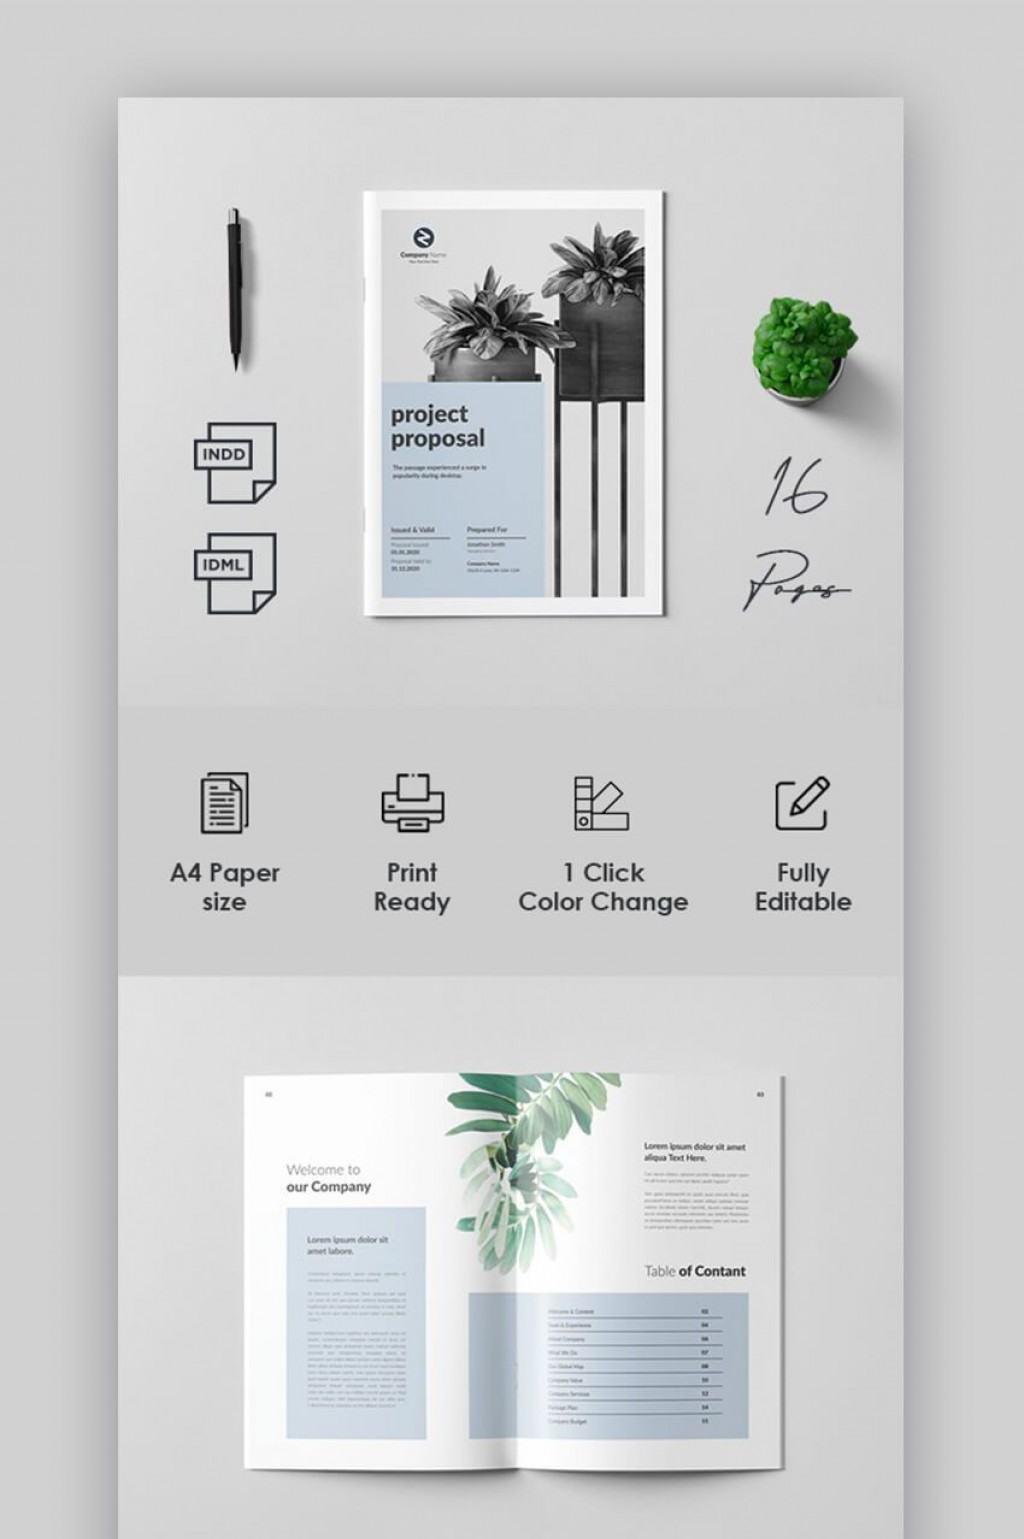 006 Staggering Social Media Proposal Template 2019 Sample Large